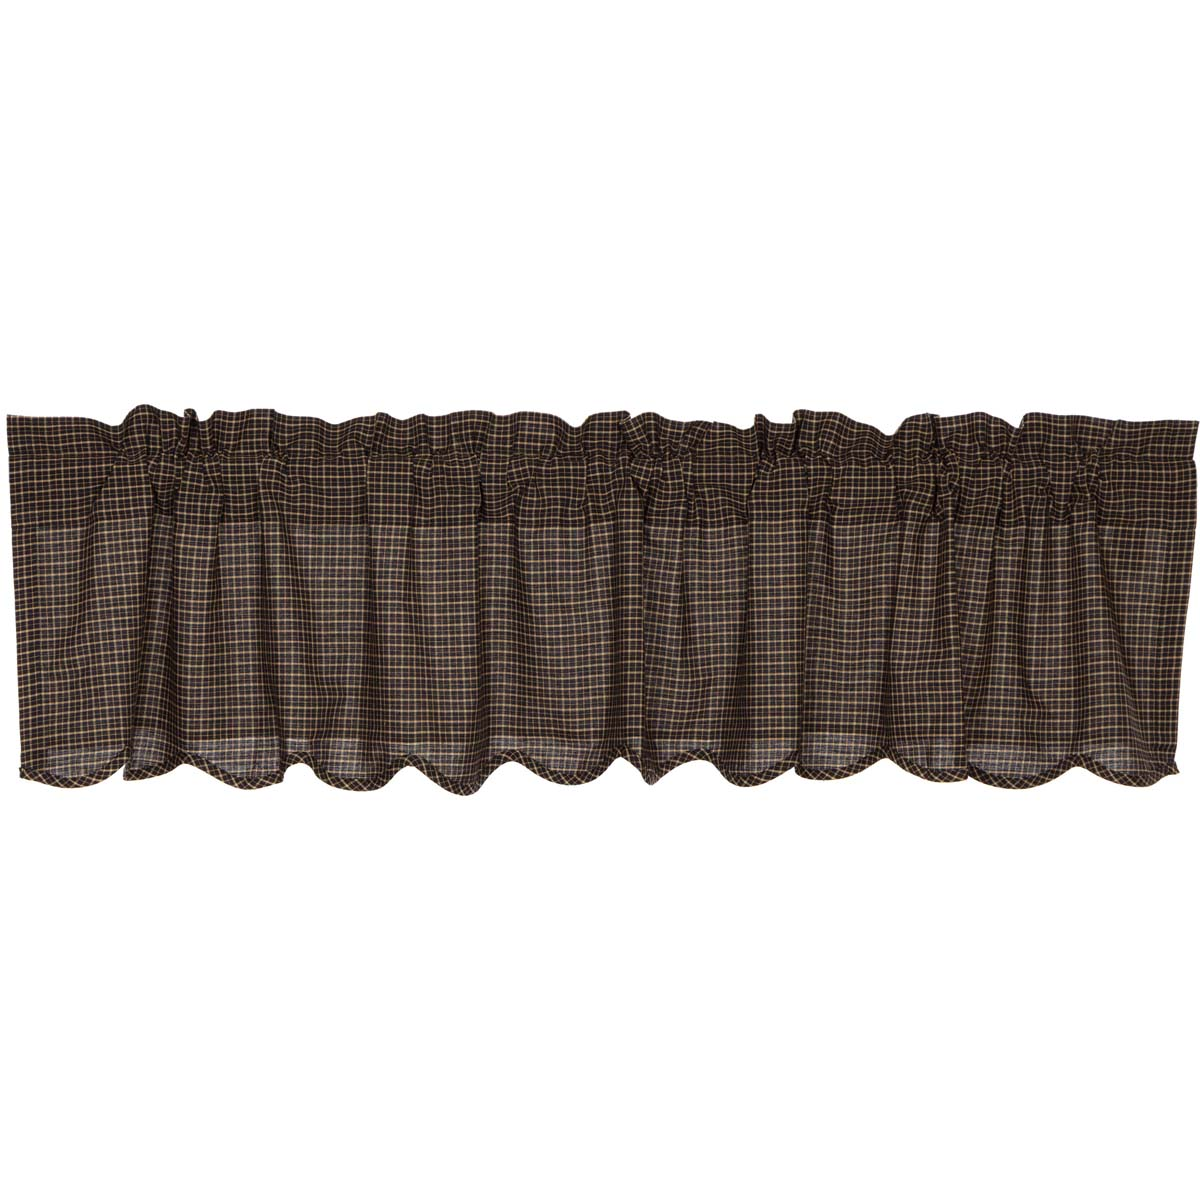 Kettle Grove Plaid Valance Scalloped16x72